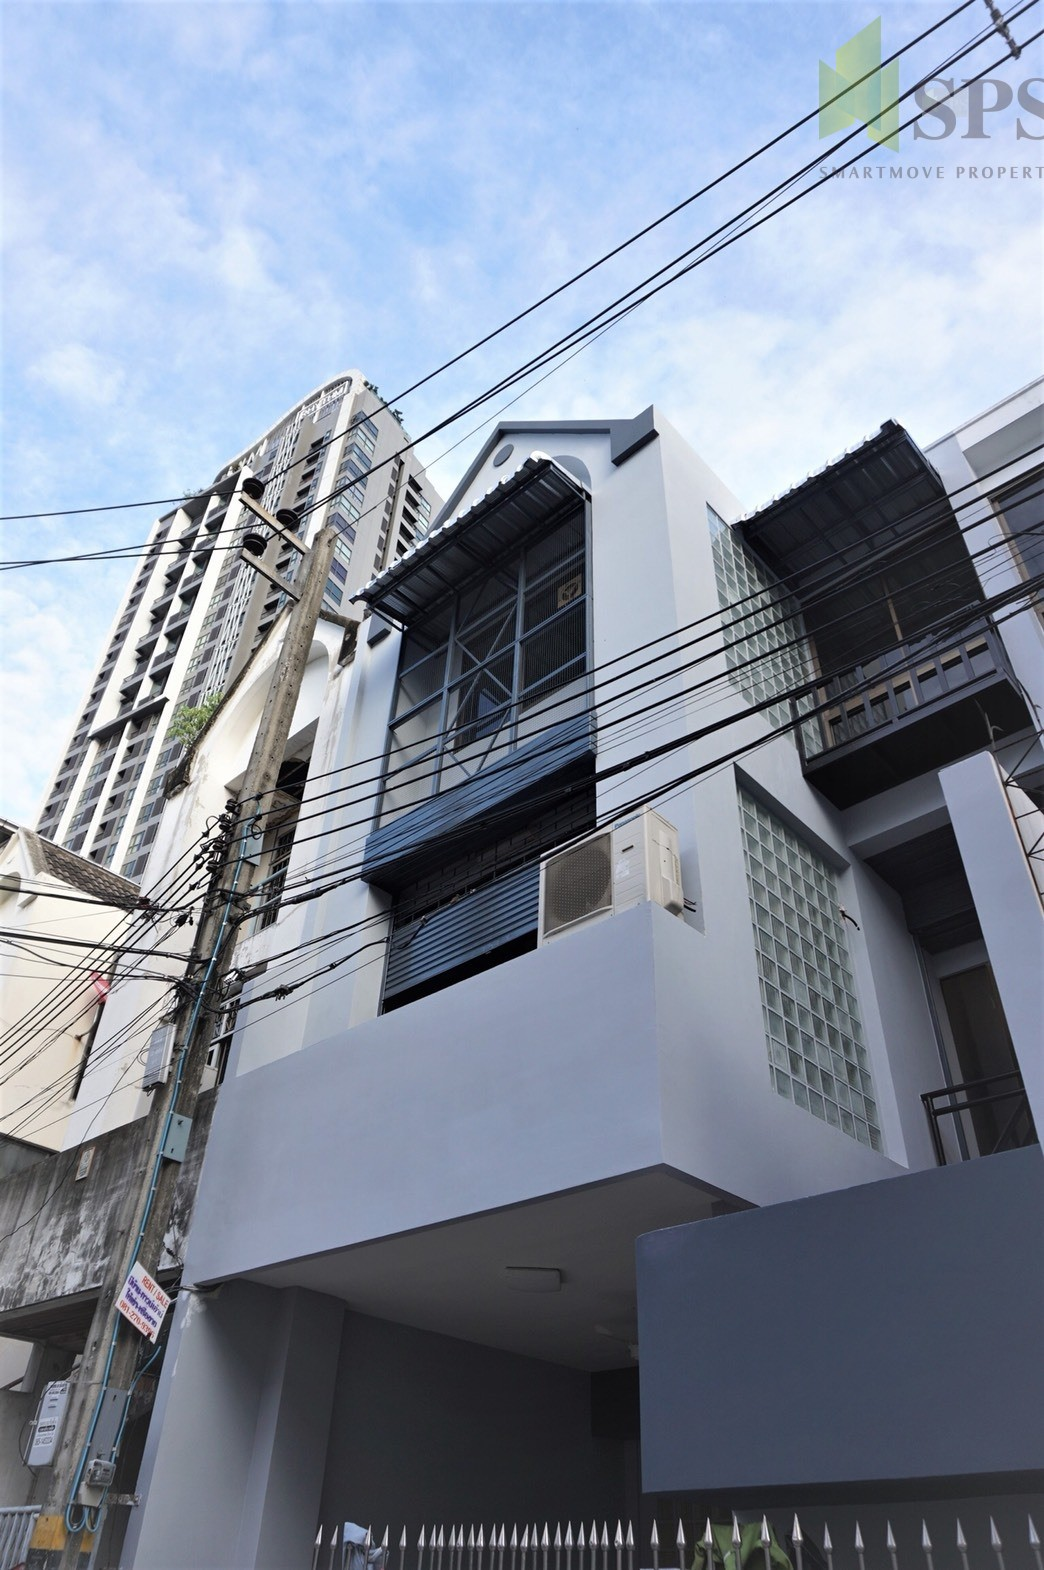 Townhouse for Rent near BTS Prakanong (Property ID: SPS-PP106)